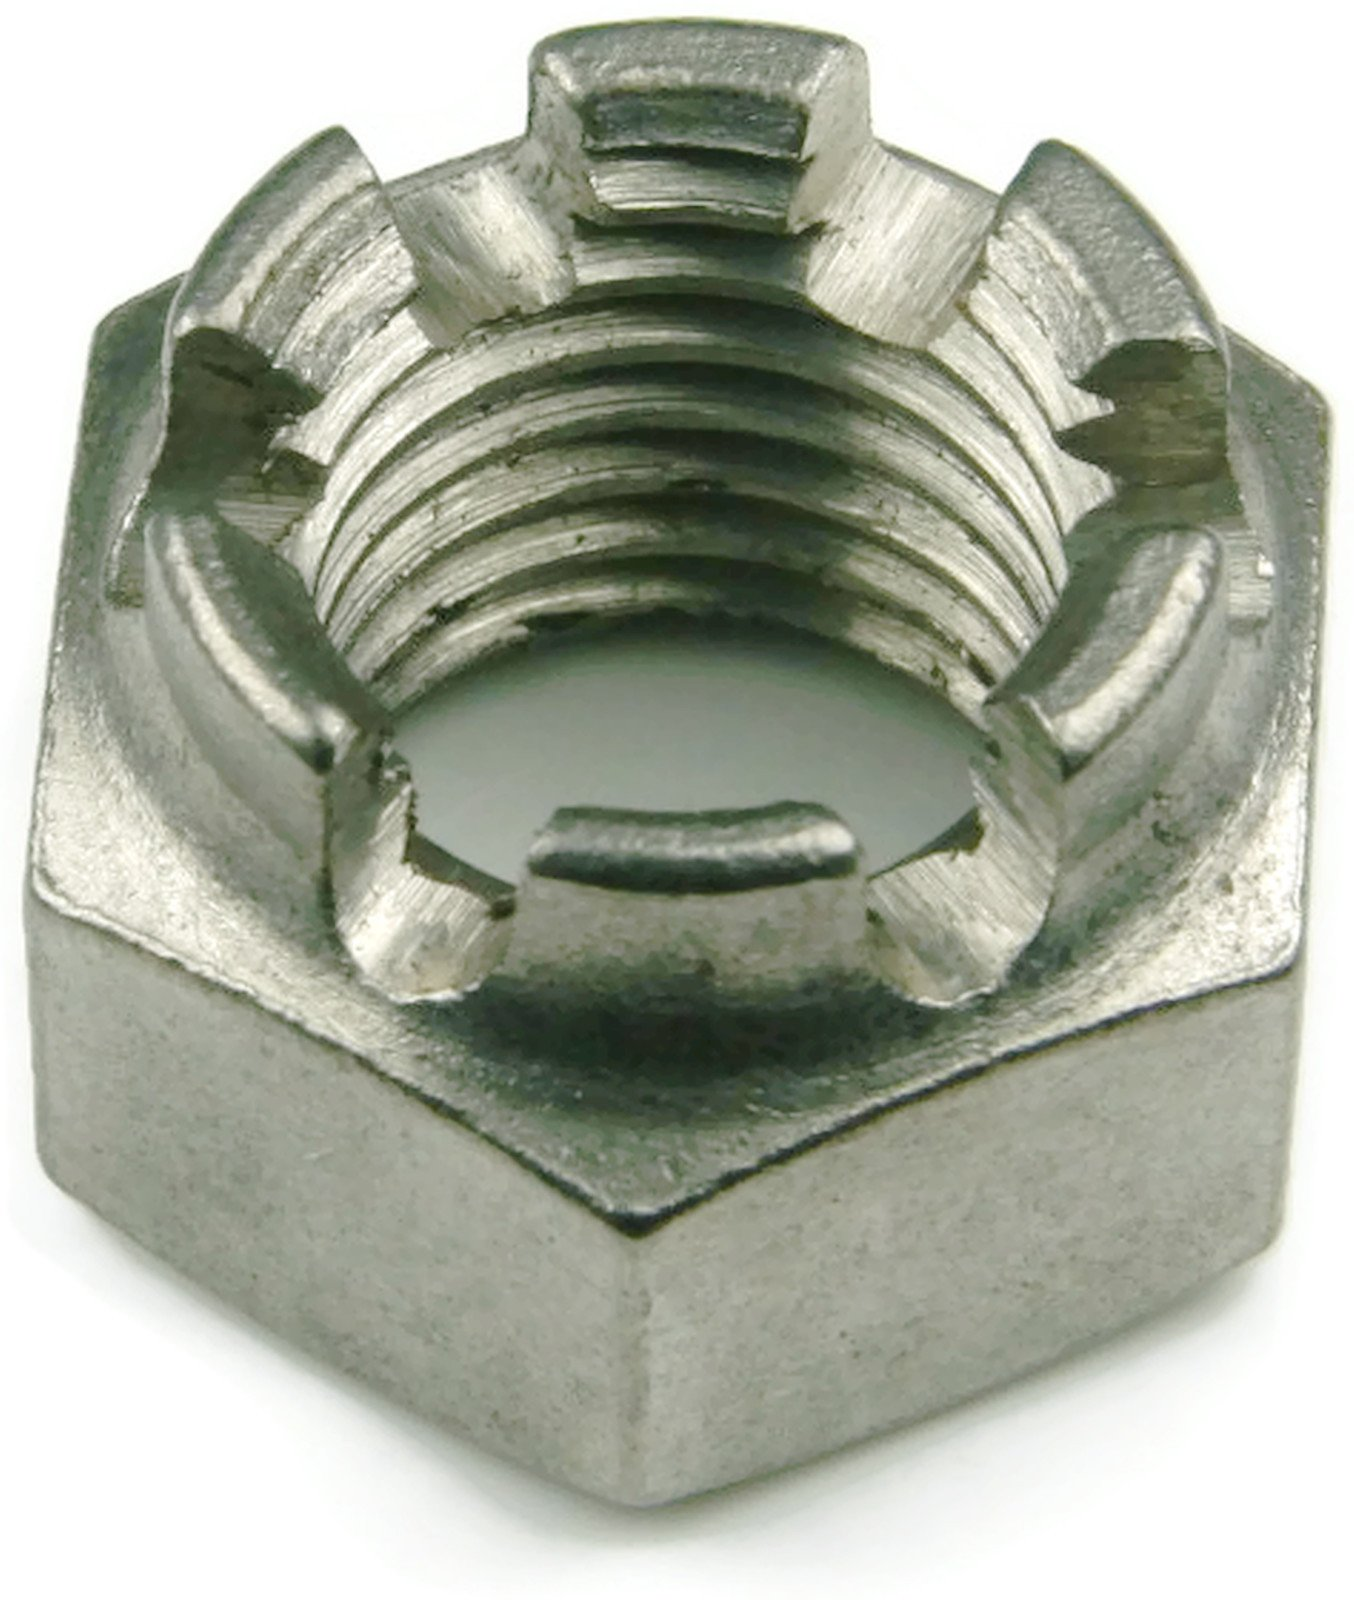 Castle Nuts 18-8 Stainless Steel - 5/8-18 Each